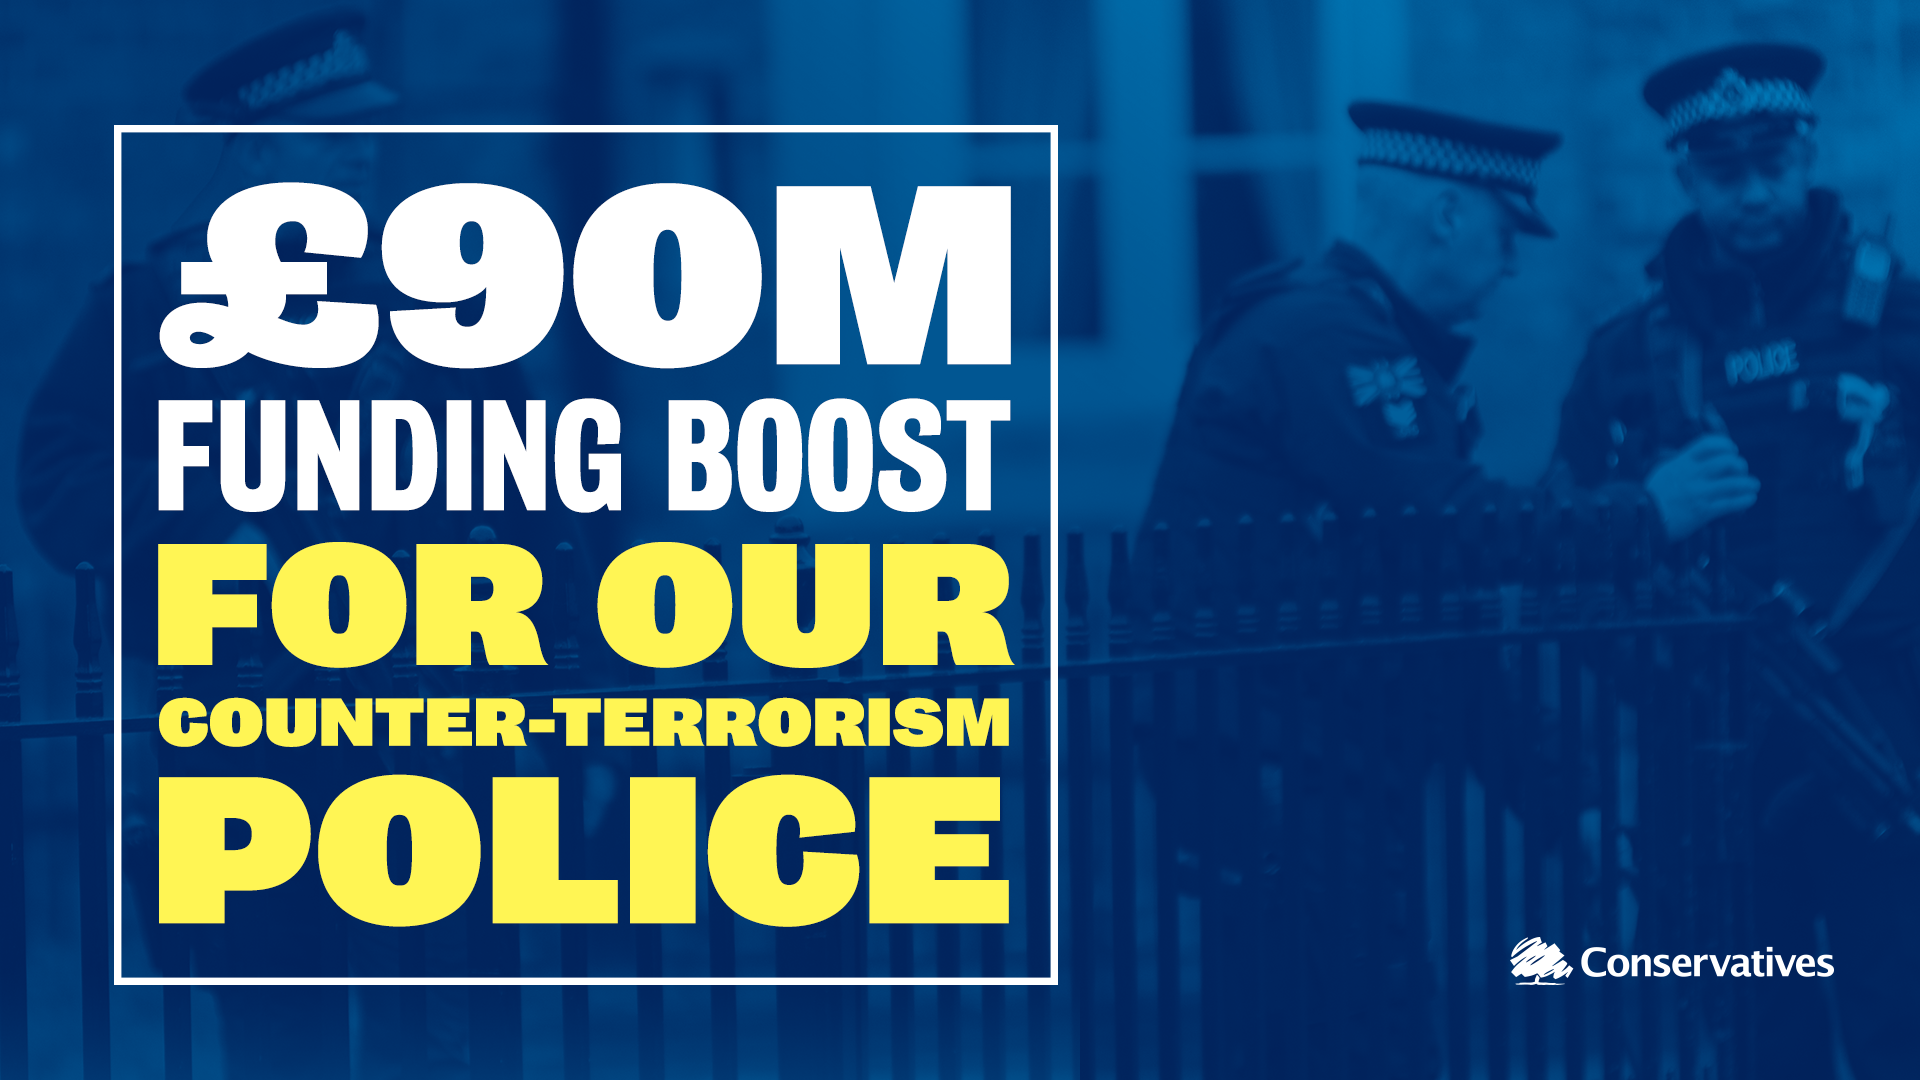 £90m funding boost for our counter-terrorism police